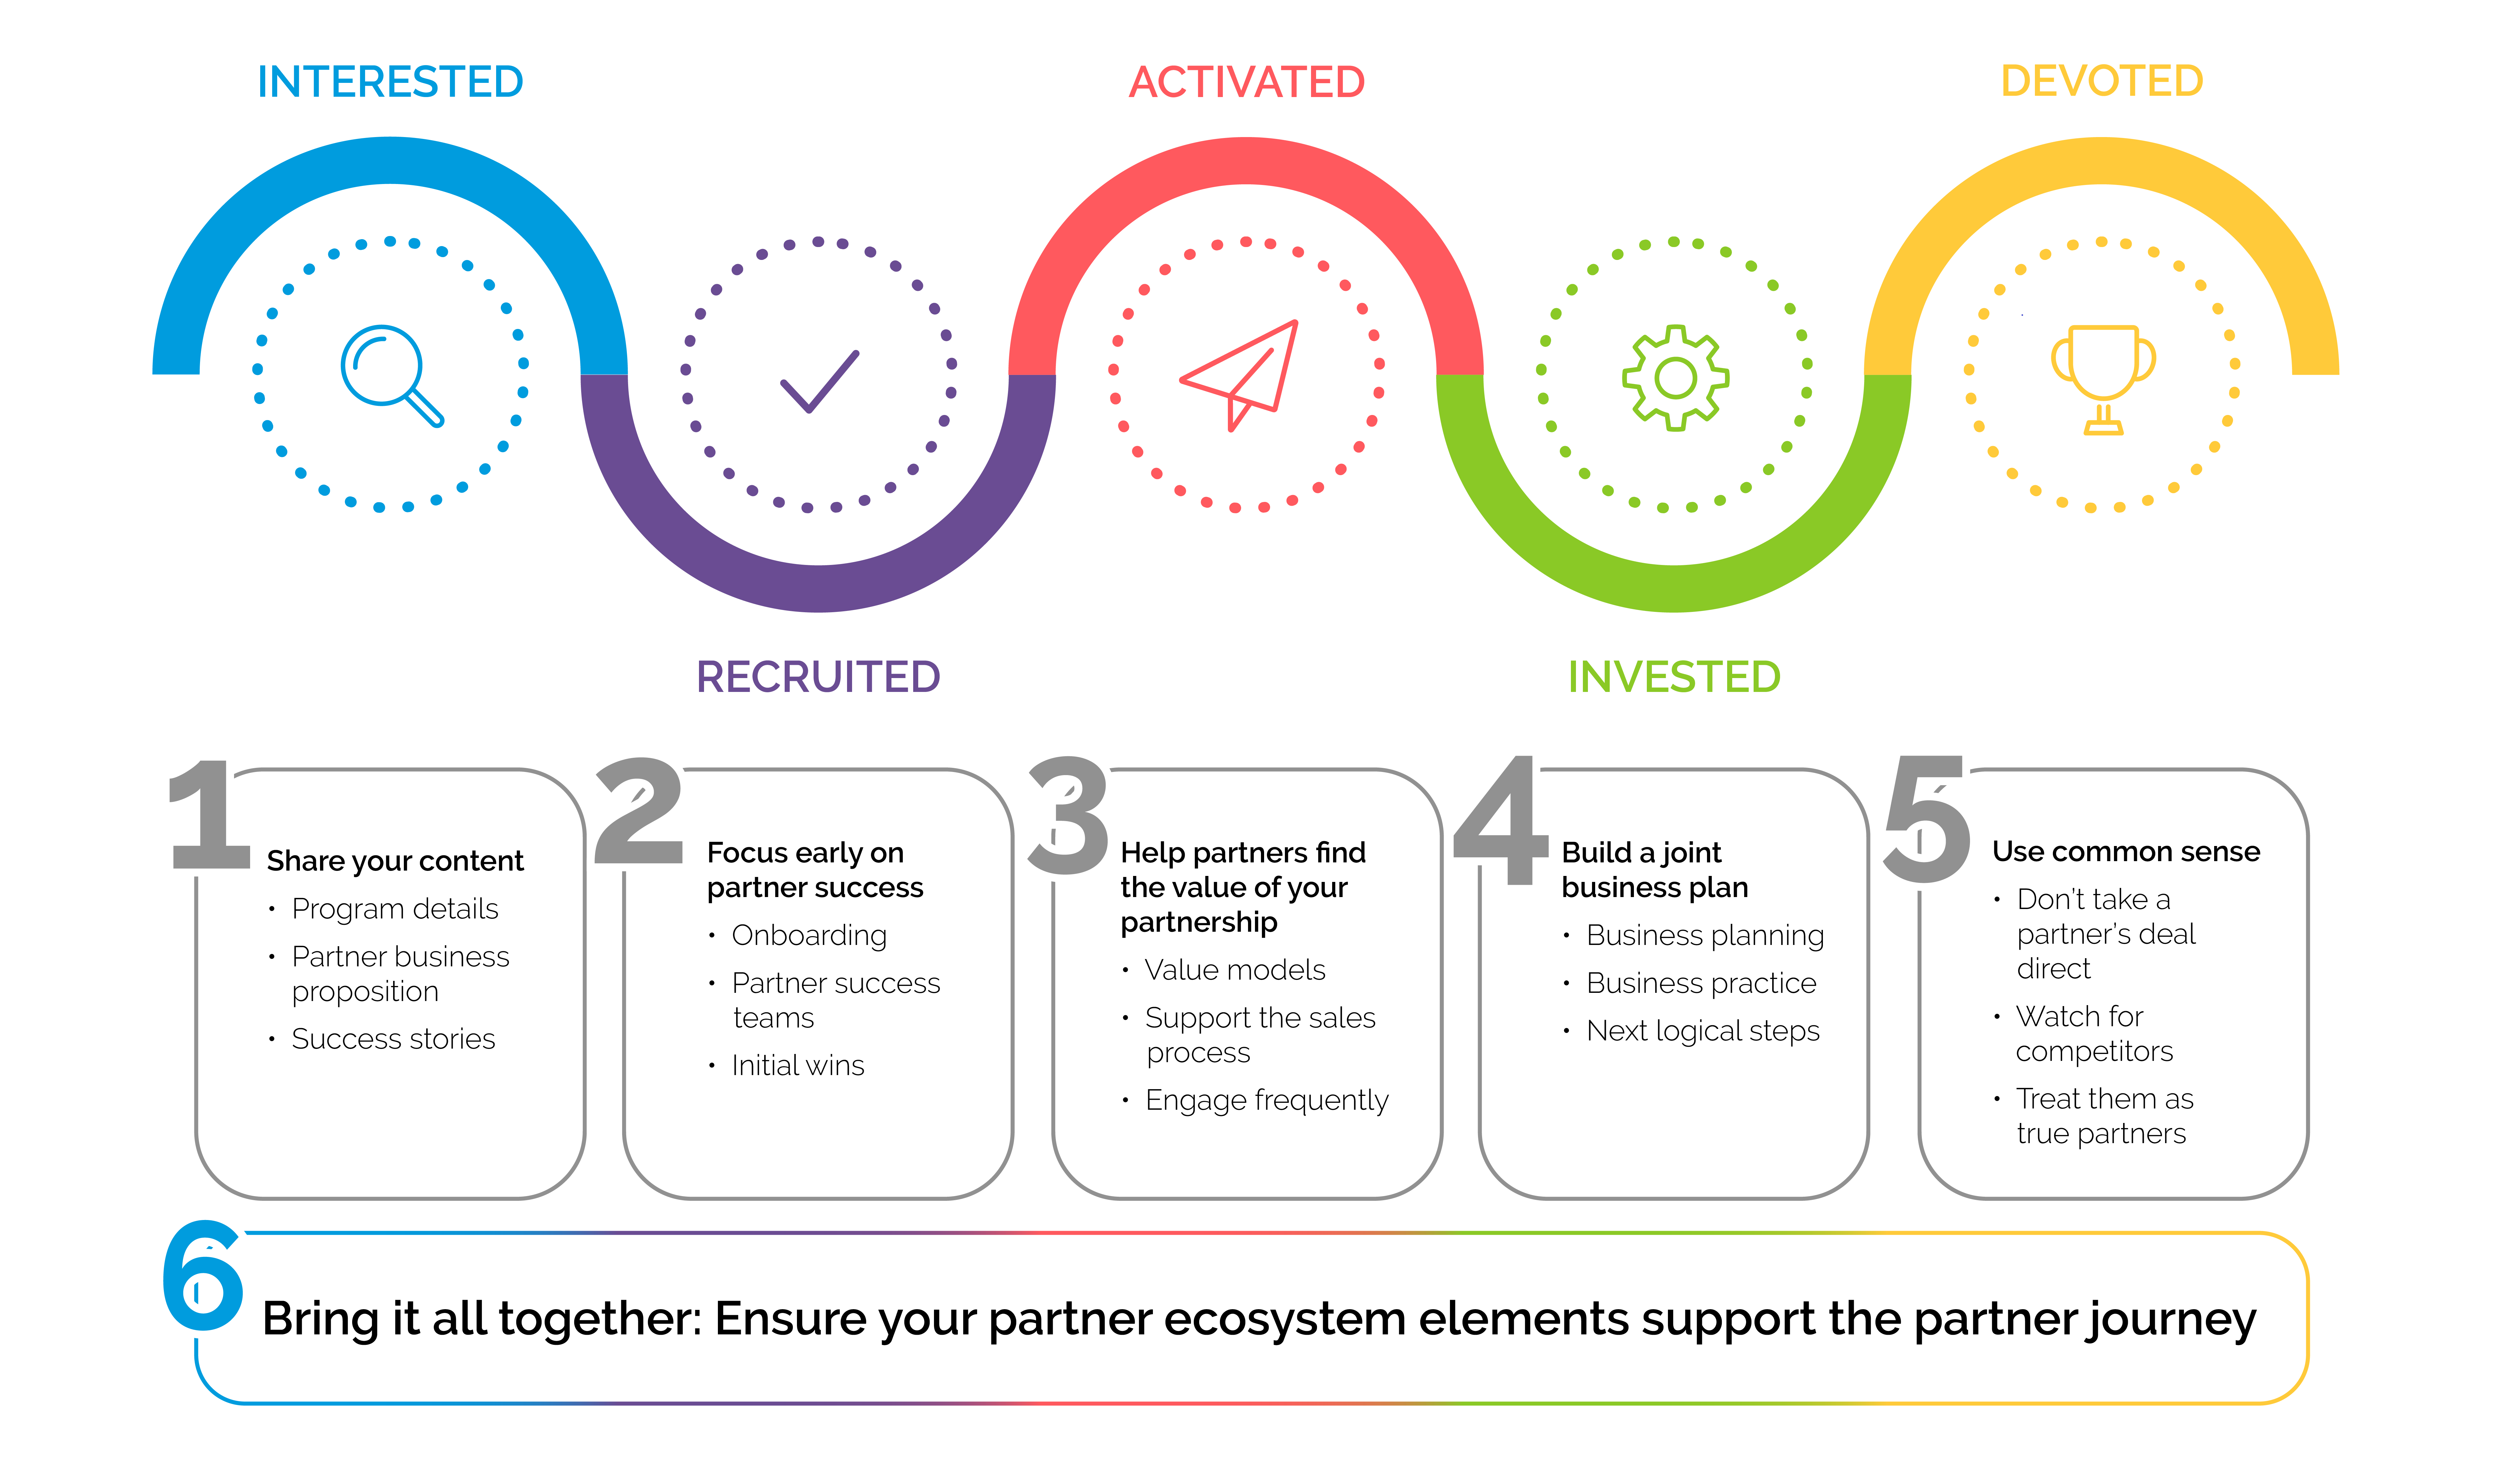 Graph showing the 6 steps of the partner journey.